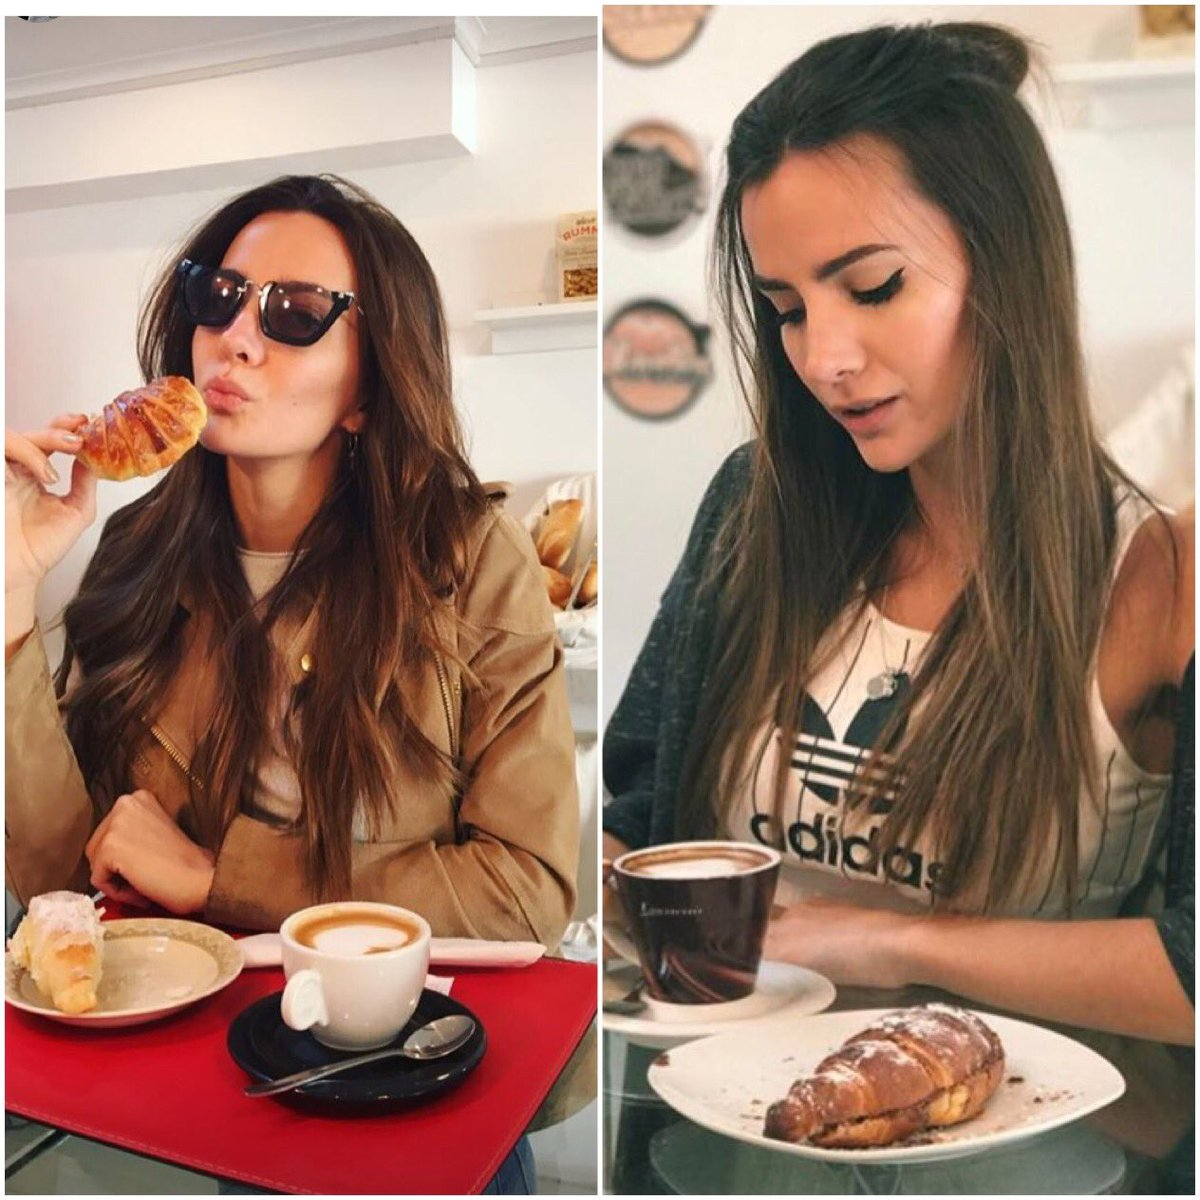 &quot;be a good person but don&#39;t waste time to prove it&quot; ..at @lapanetteriachile @Aylenmilla #fashion #model #blogger #chile <br>http://pic.twitter.com/rUQc3vQS0r